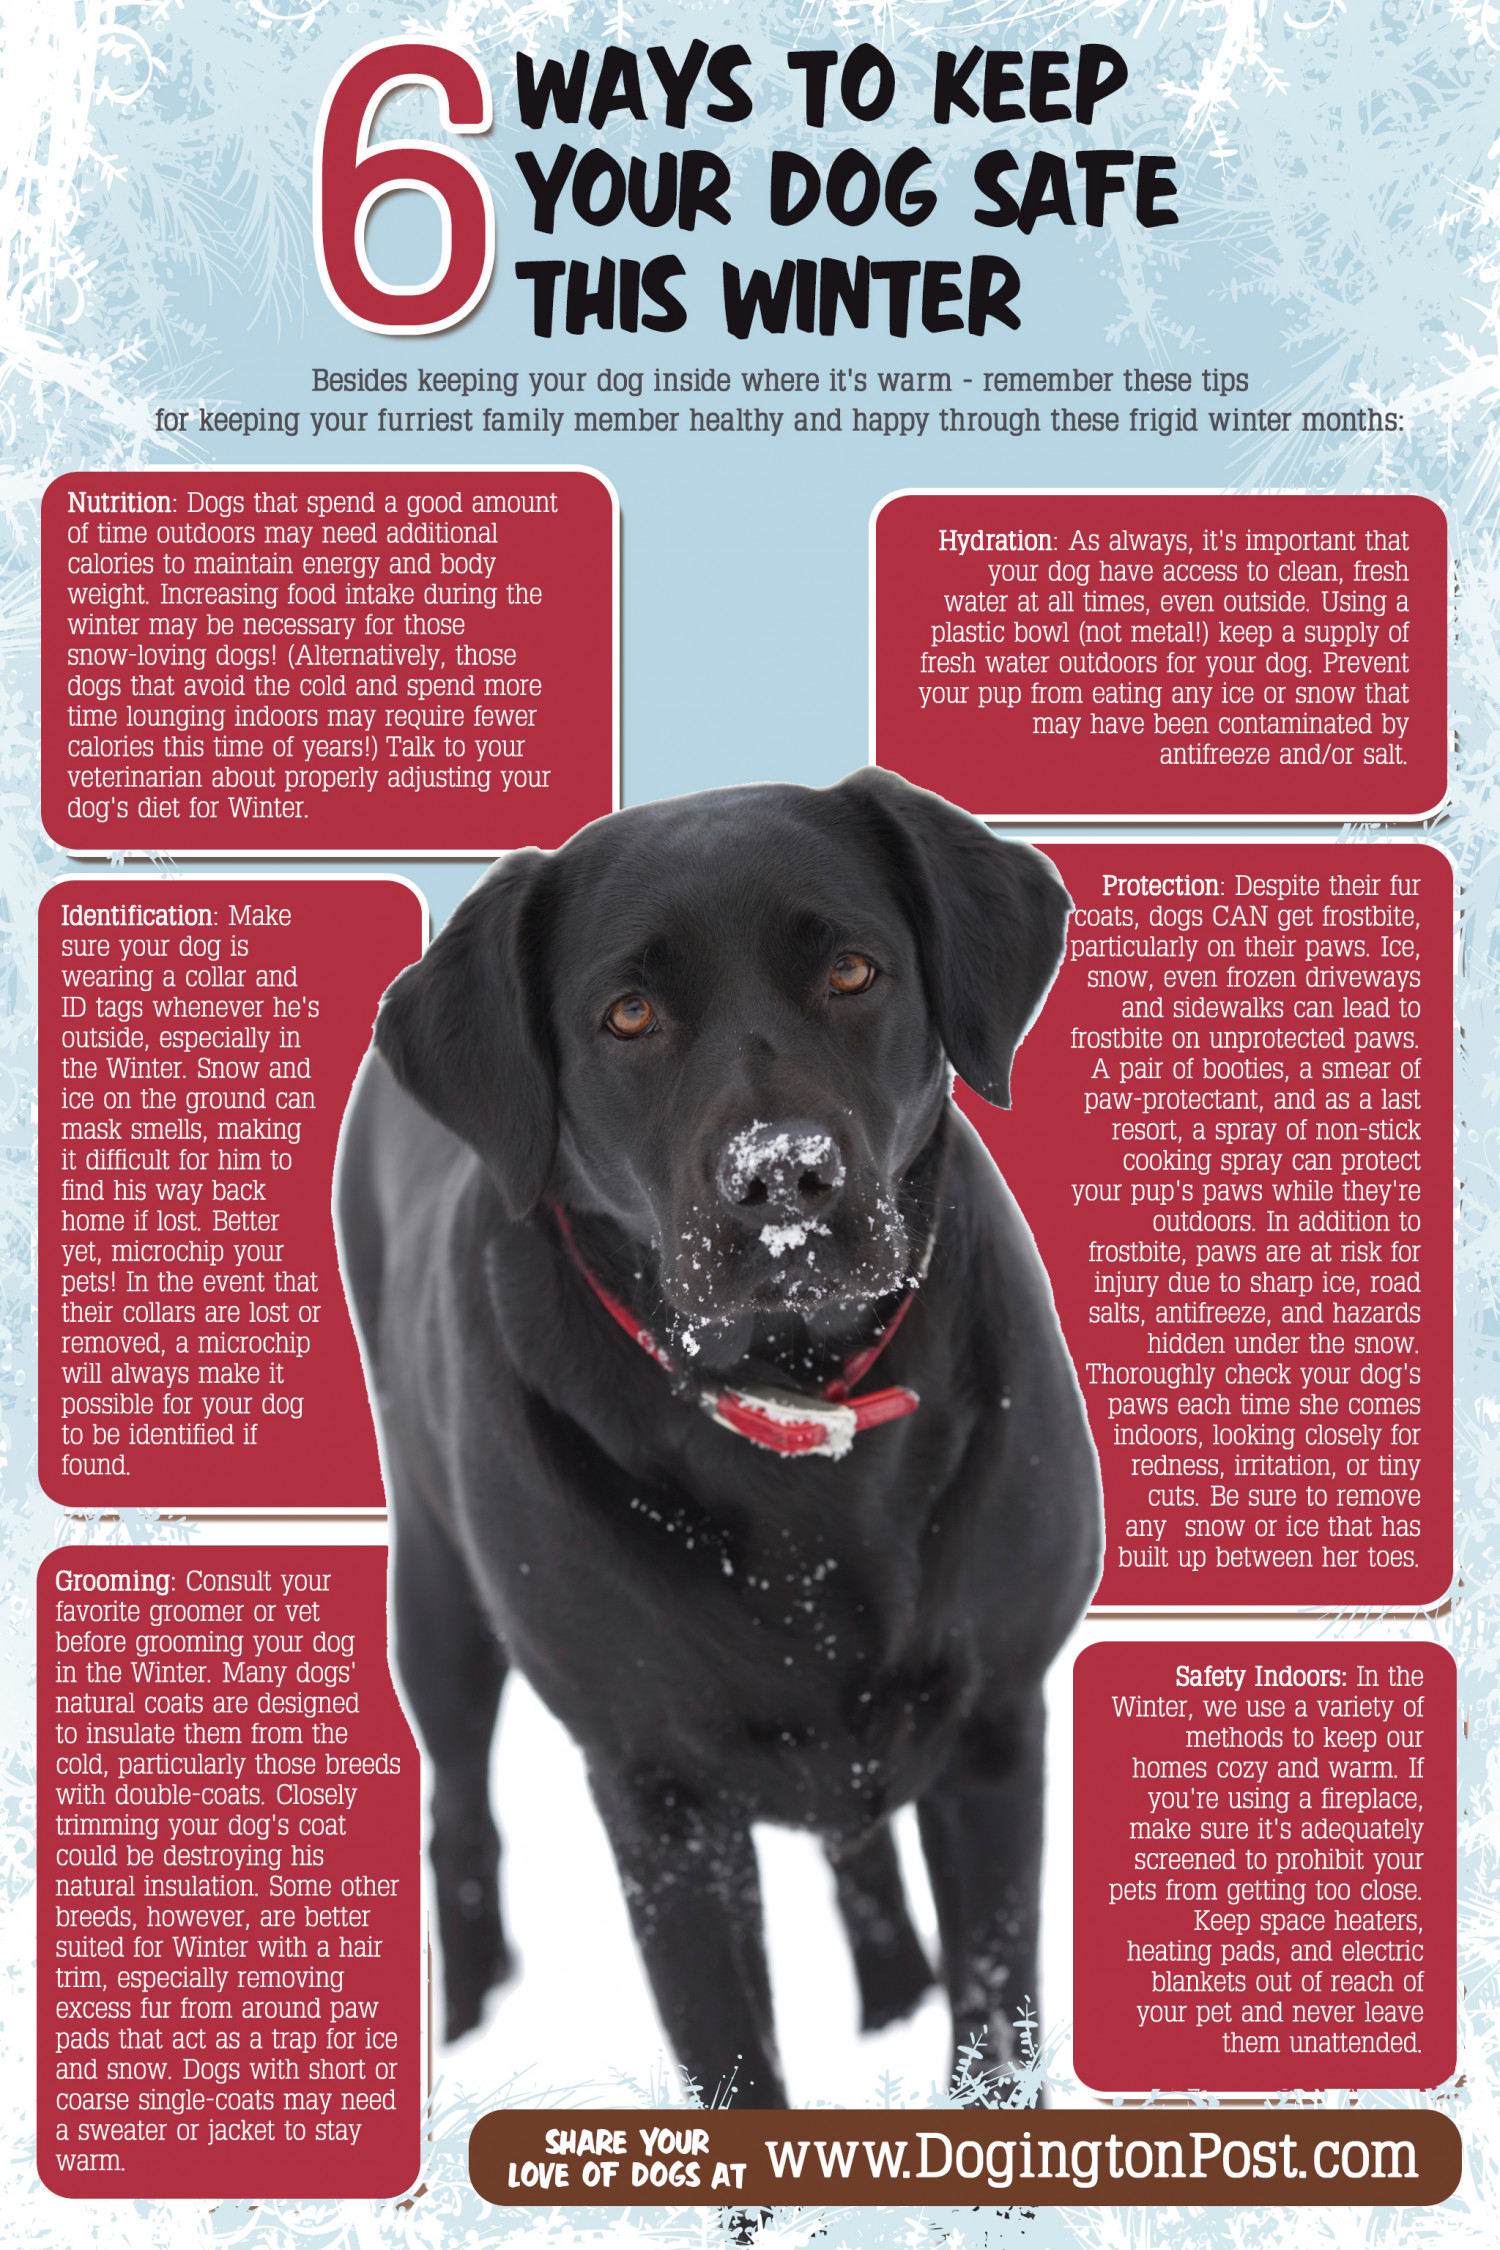 6 Ways to Keep your Dog Safe this Winter Infographic